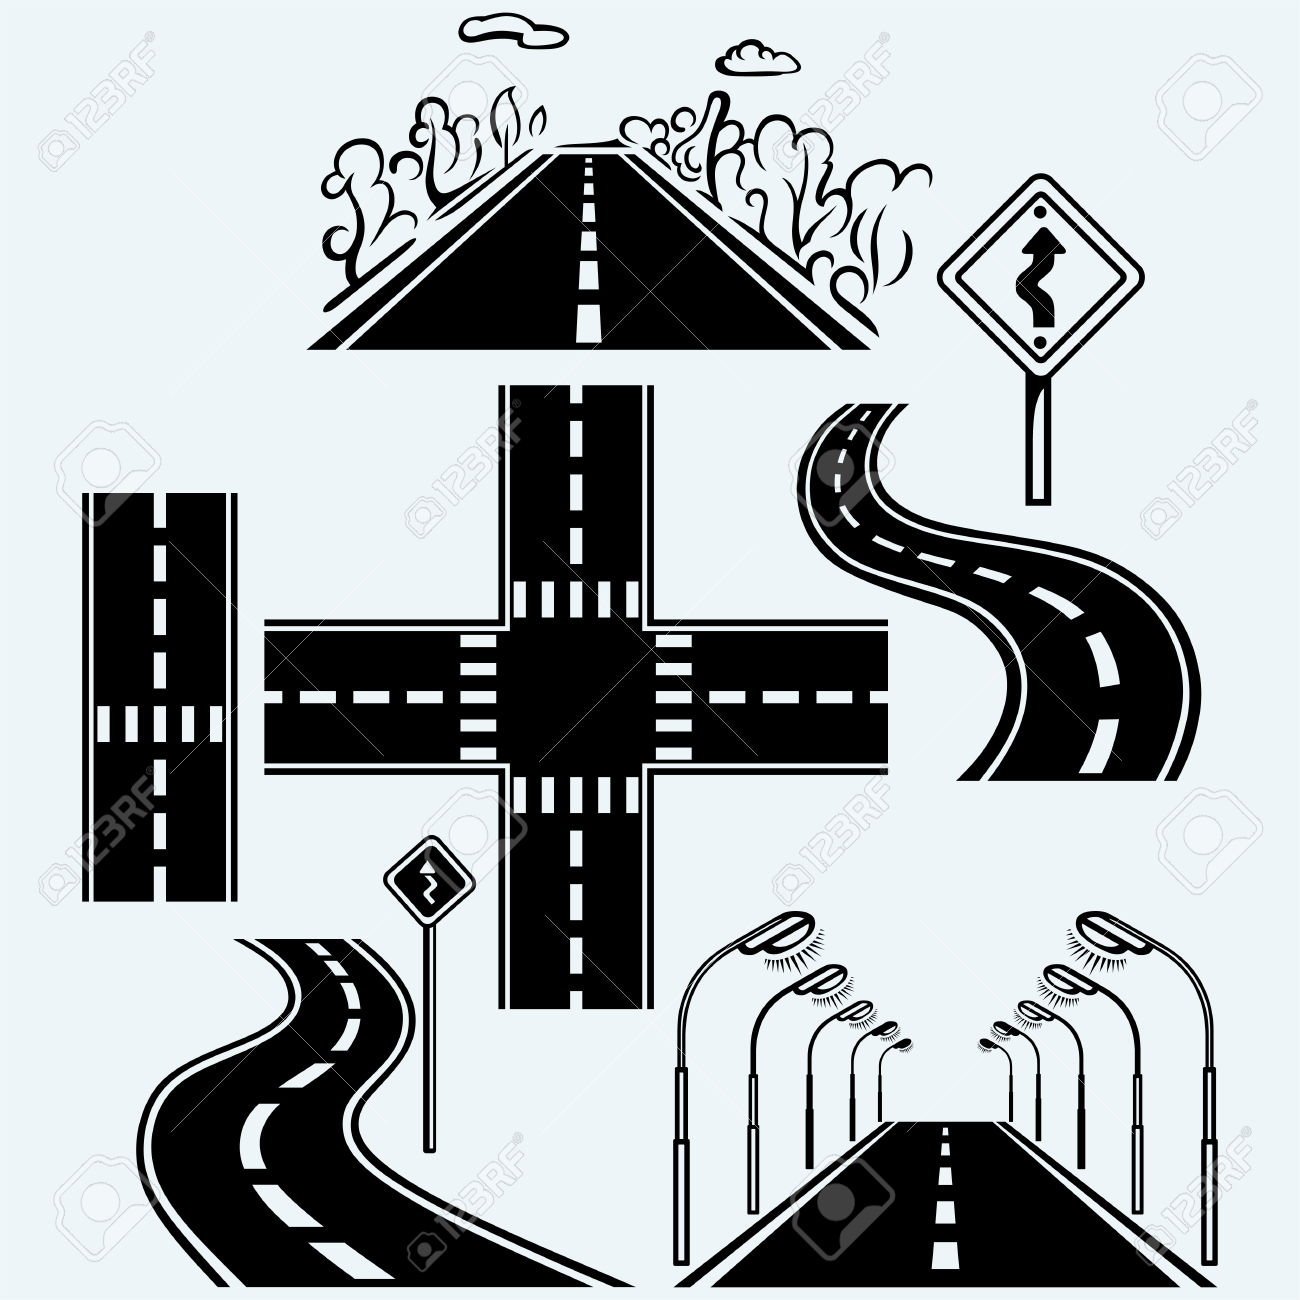 Road Symbols With Winding Highways, Forked Pathways And Crossroads.